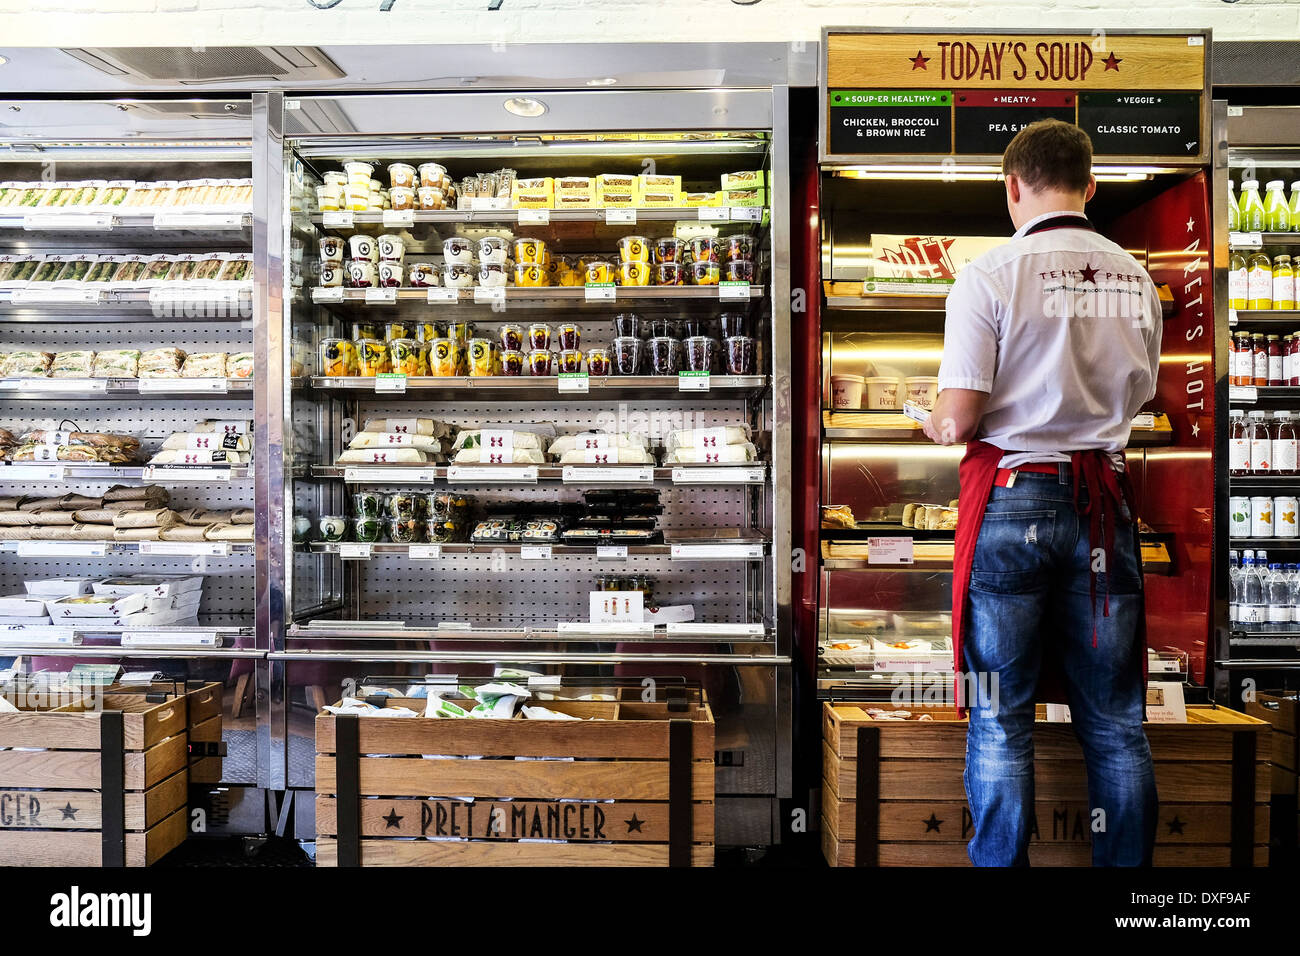 A member of the Pret a Manger staff stocking shelves. - Stock Image